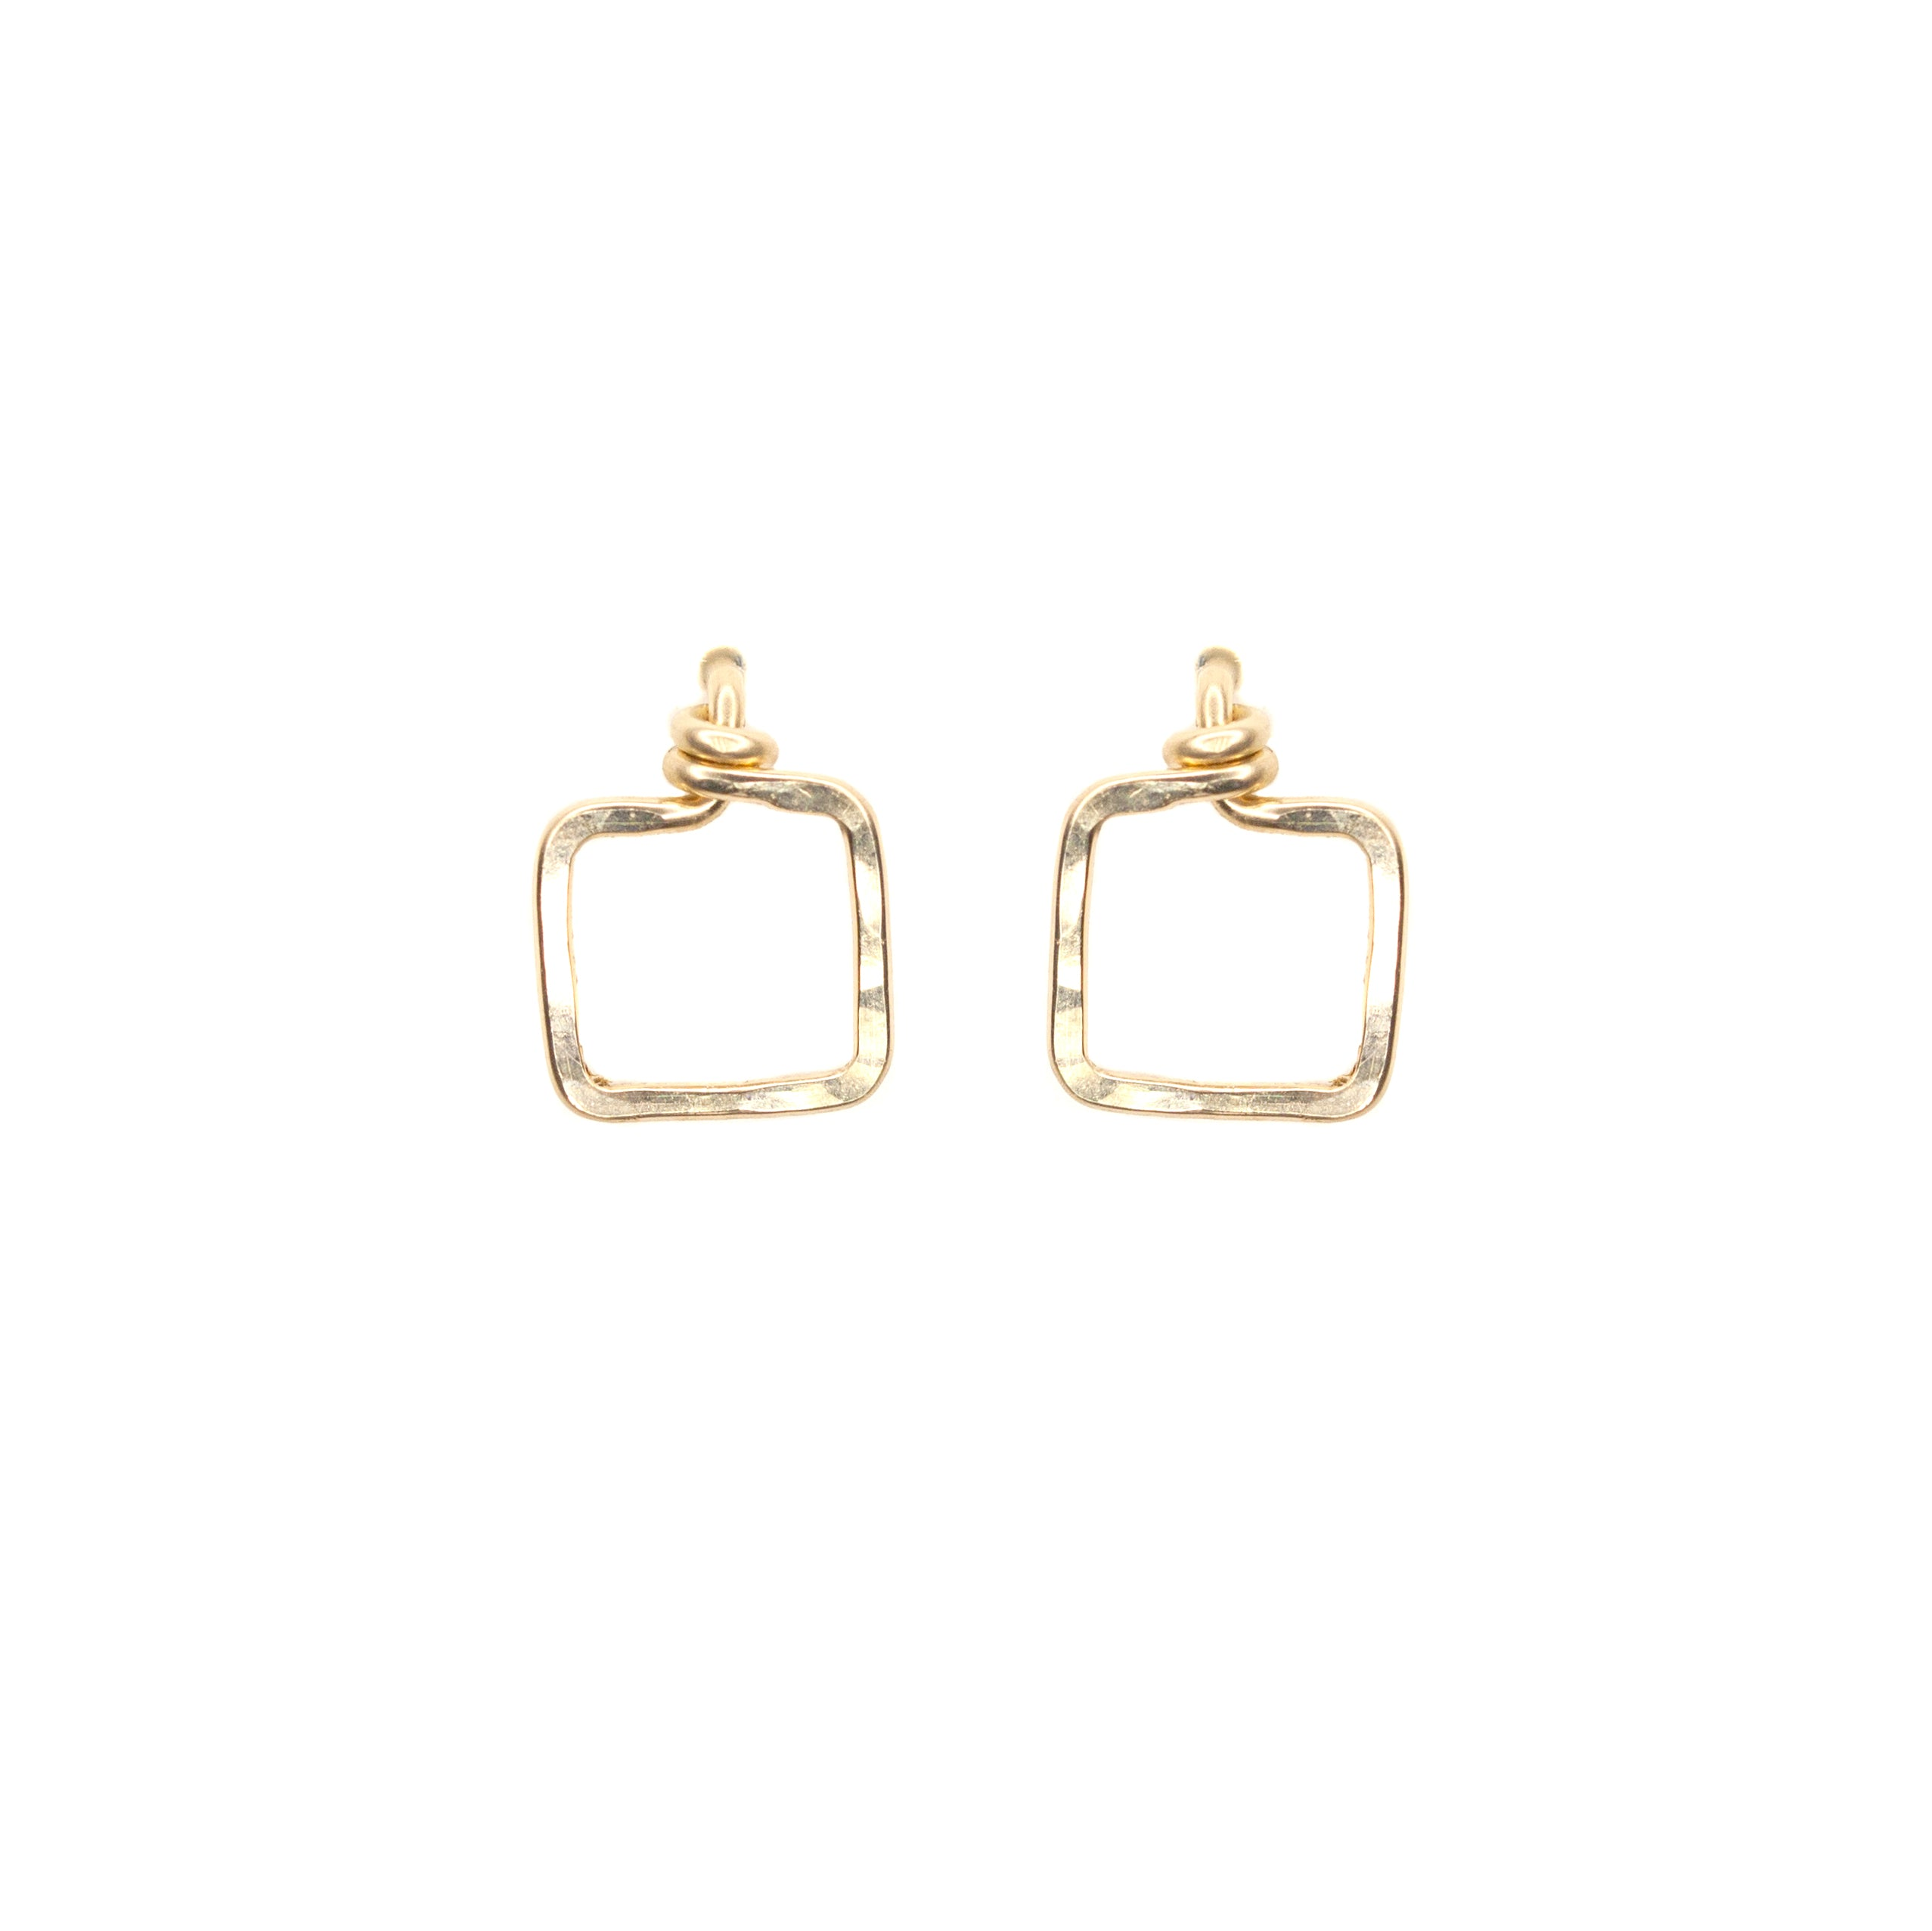 ophelia small in scott kendra a stud earrings earring categories jewelry mix gold haven